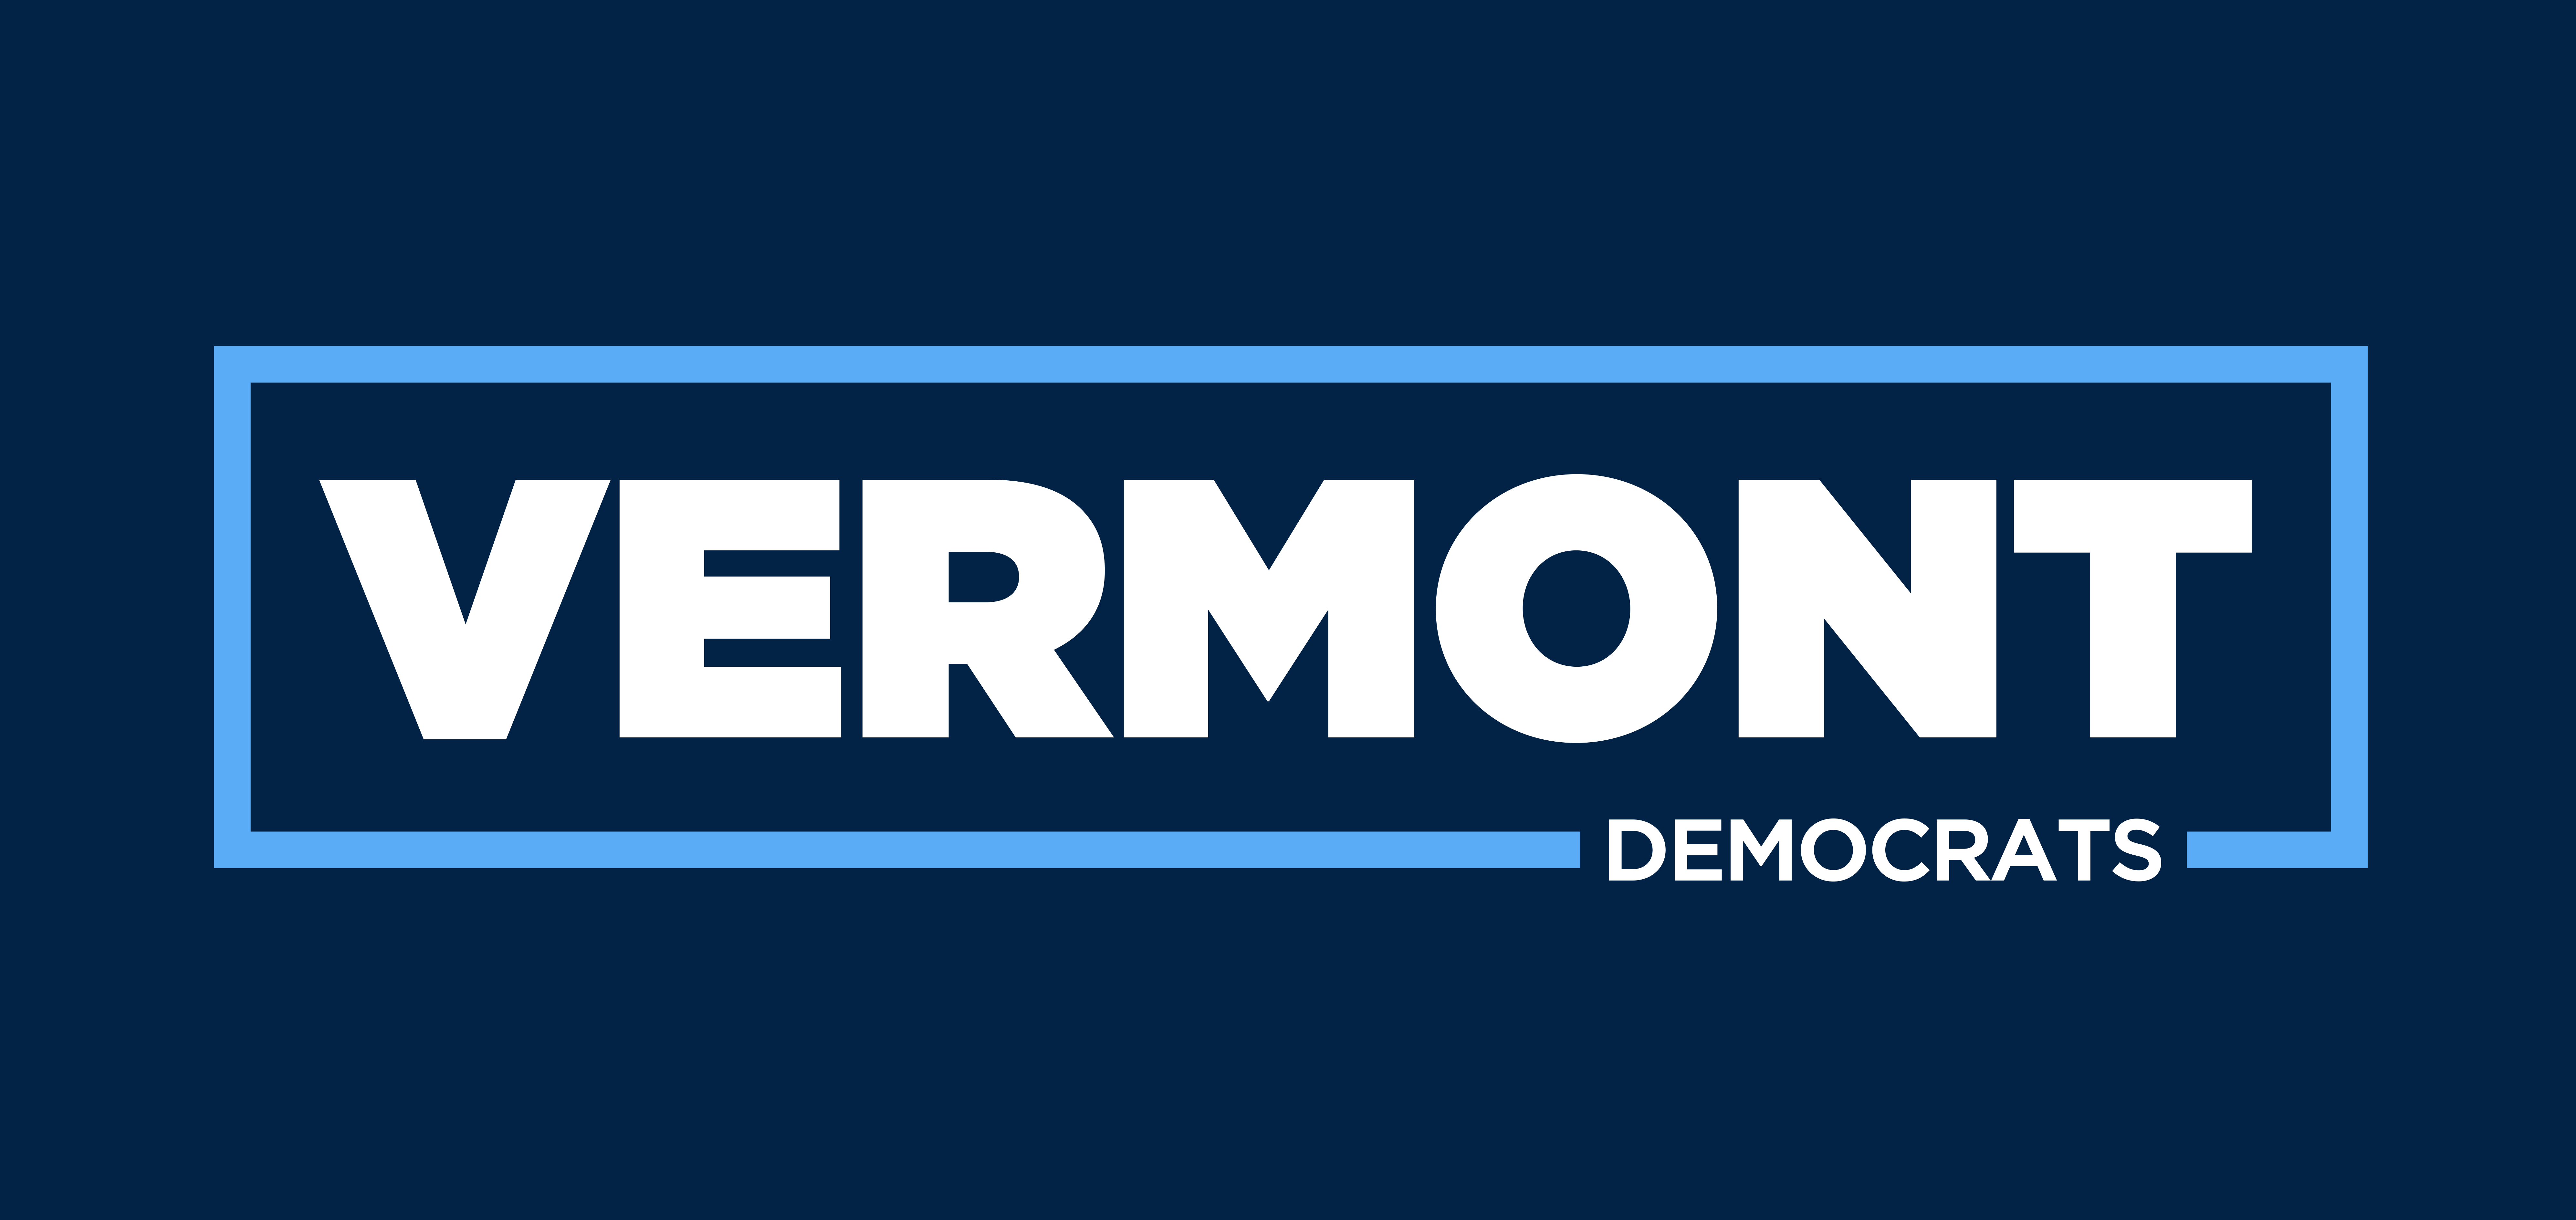 The Vermont Democratic Party